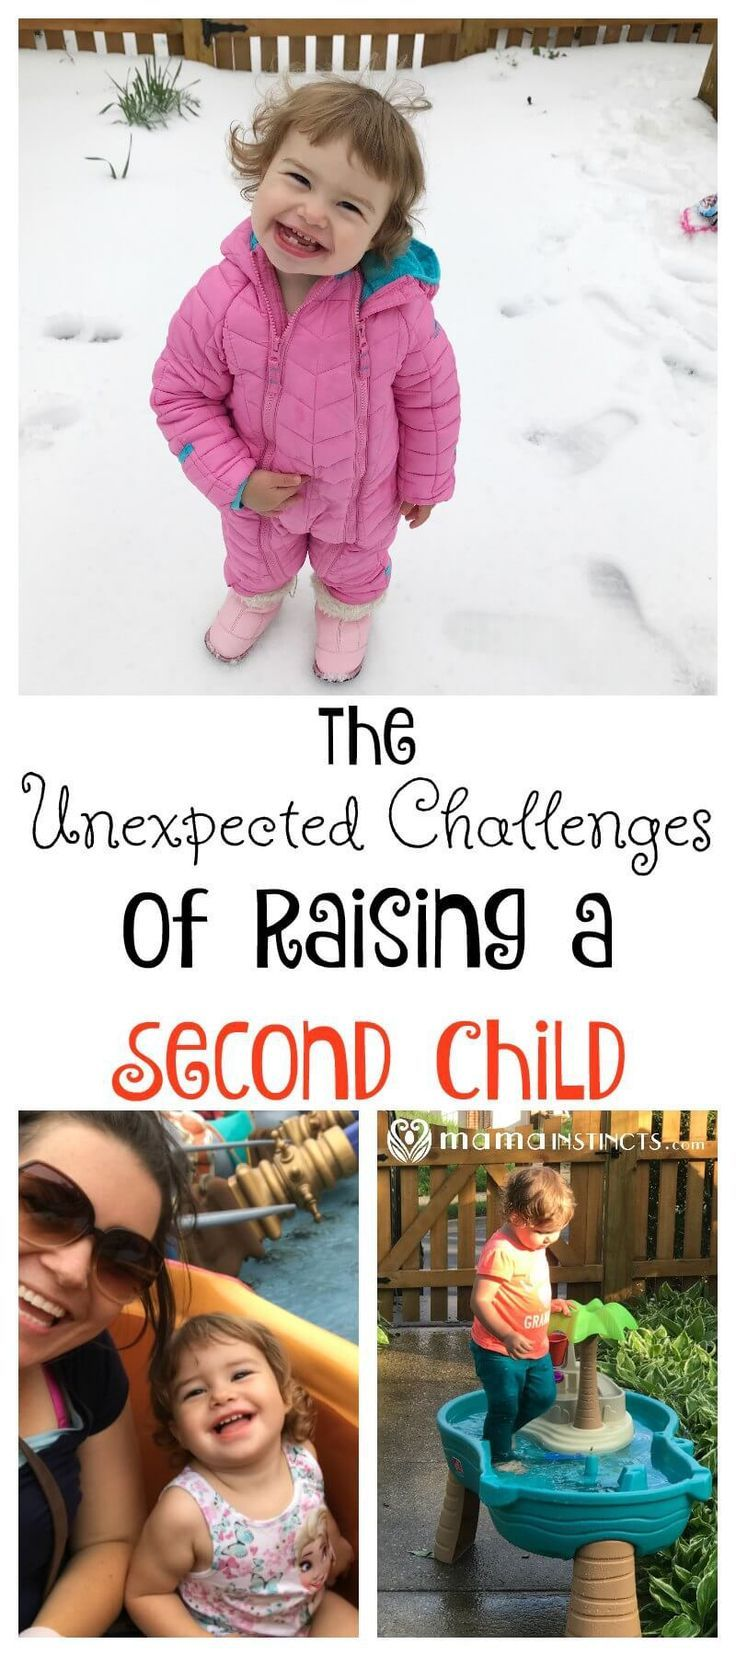 Parenting two kids: Raising one child comes with its own challenges but raising two kids can be surprisingly harder in ways you didn't expect.